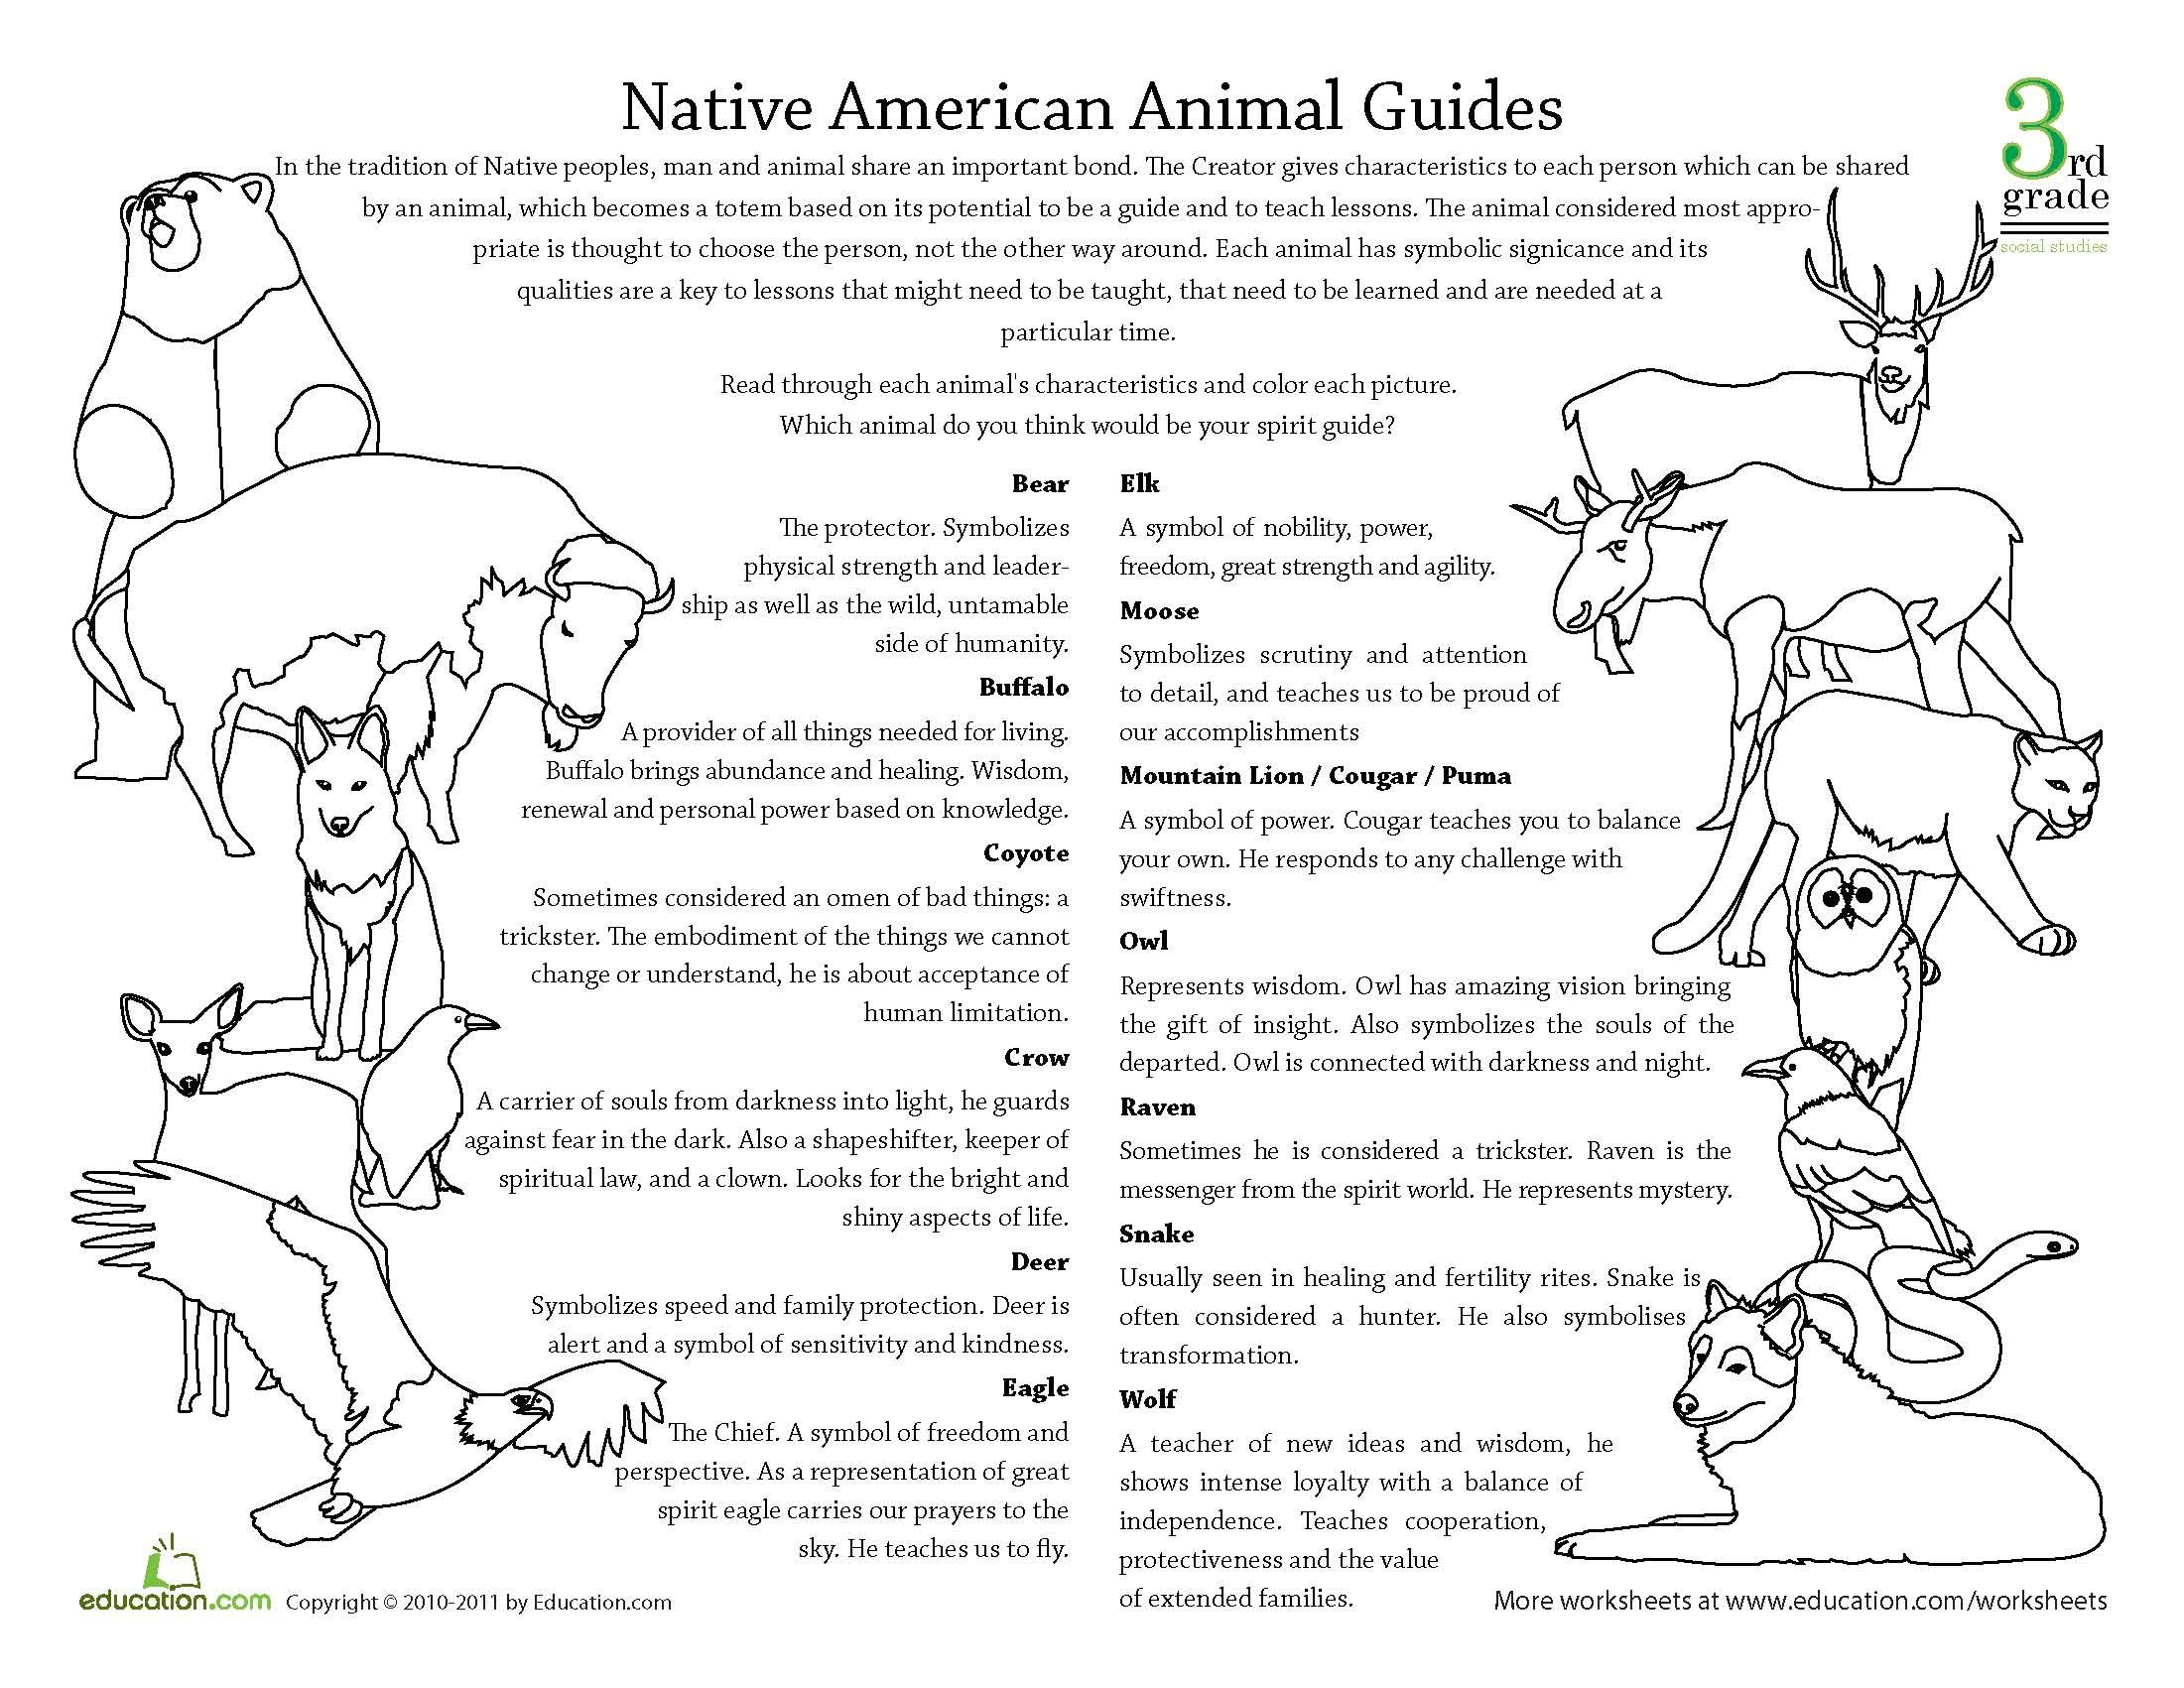 Free Worksheet American Symbols Worksheet 17 best images about native american symbols on pinterest meaning tattoos trail of tears and pow wow